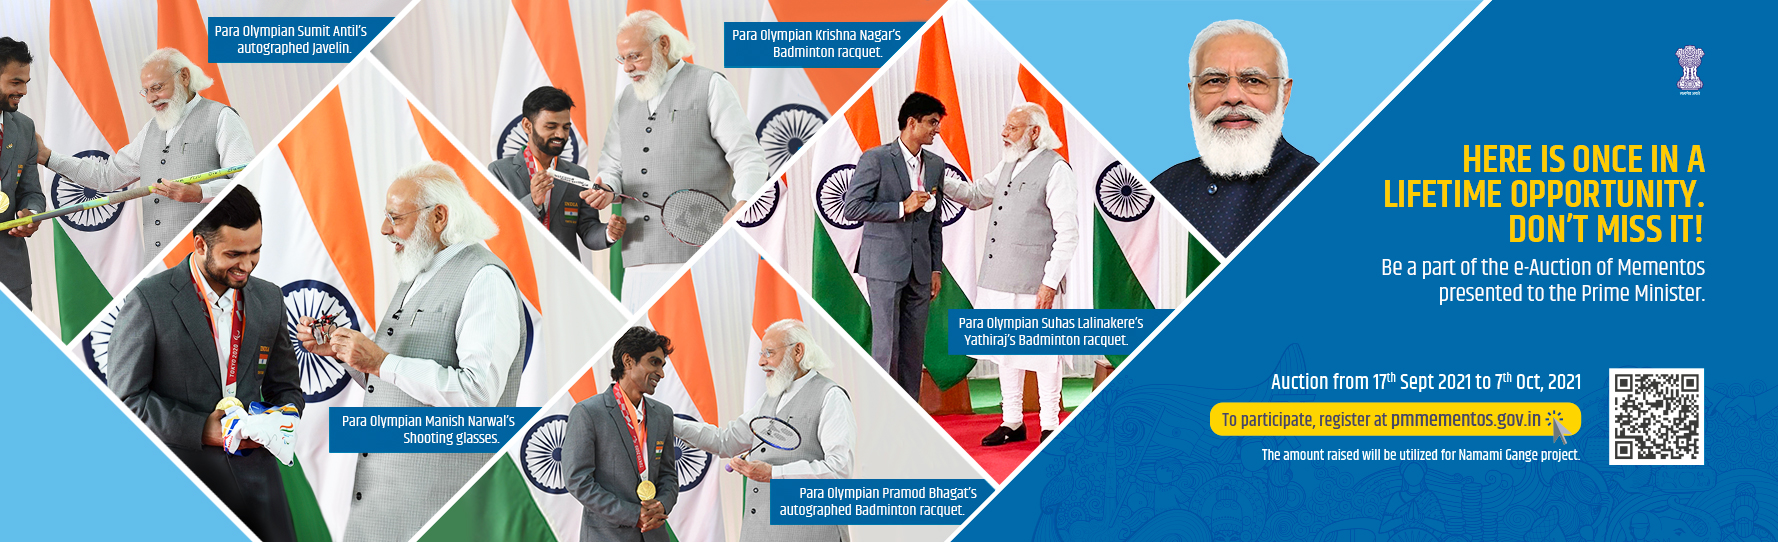 Banner of PM Mementoes